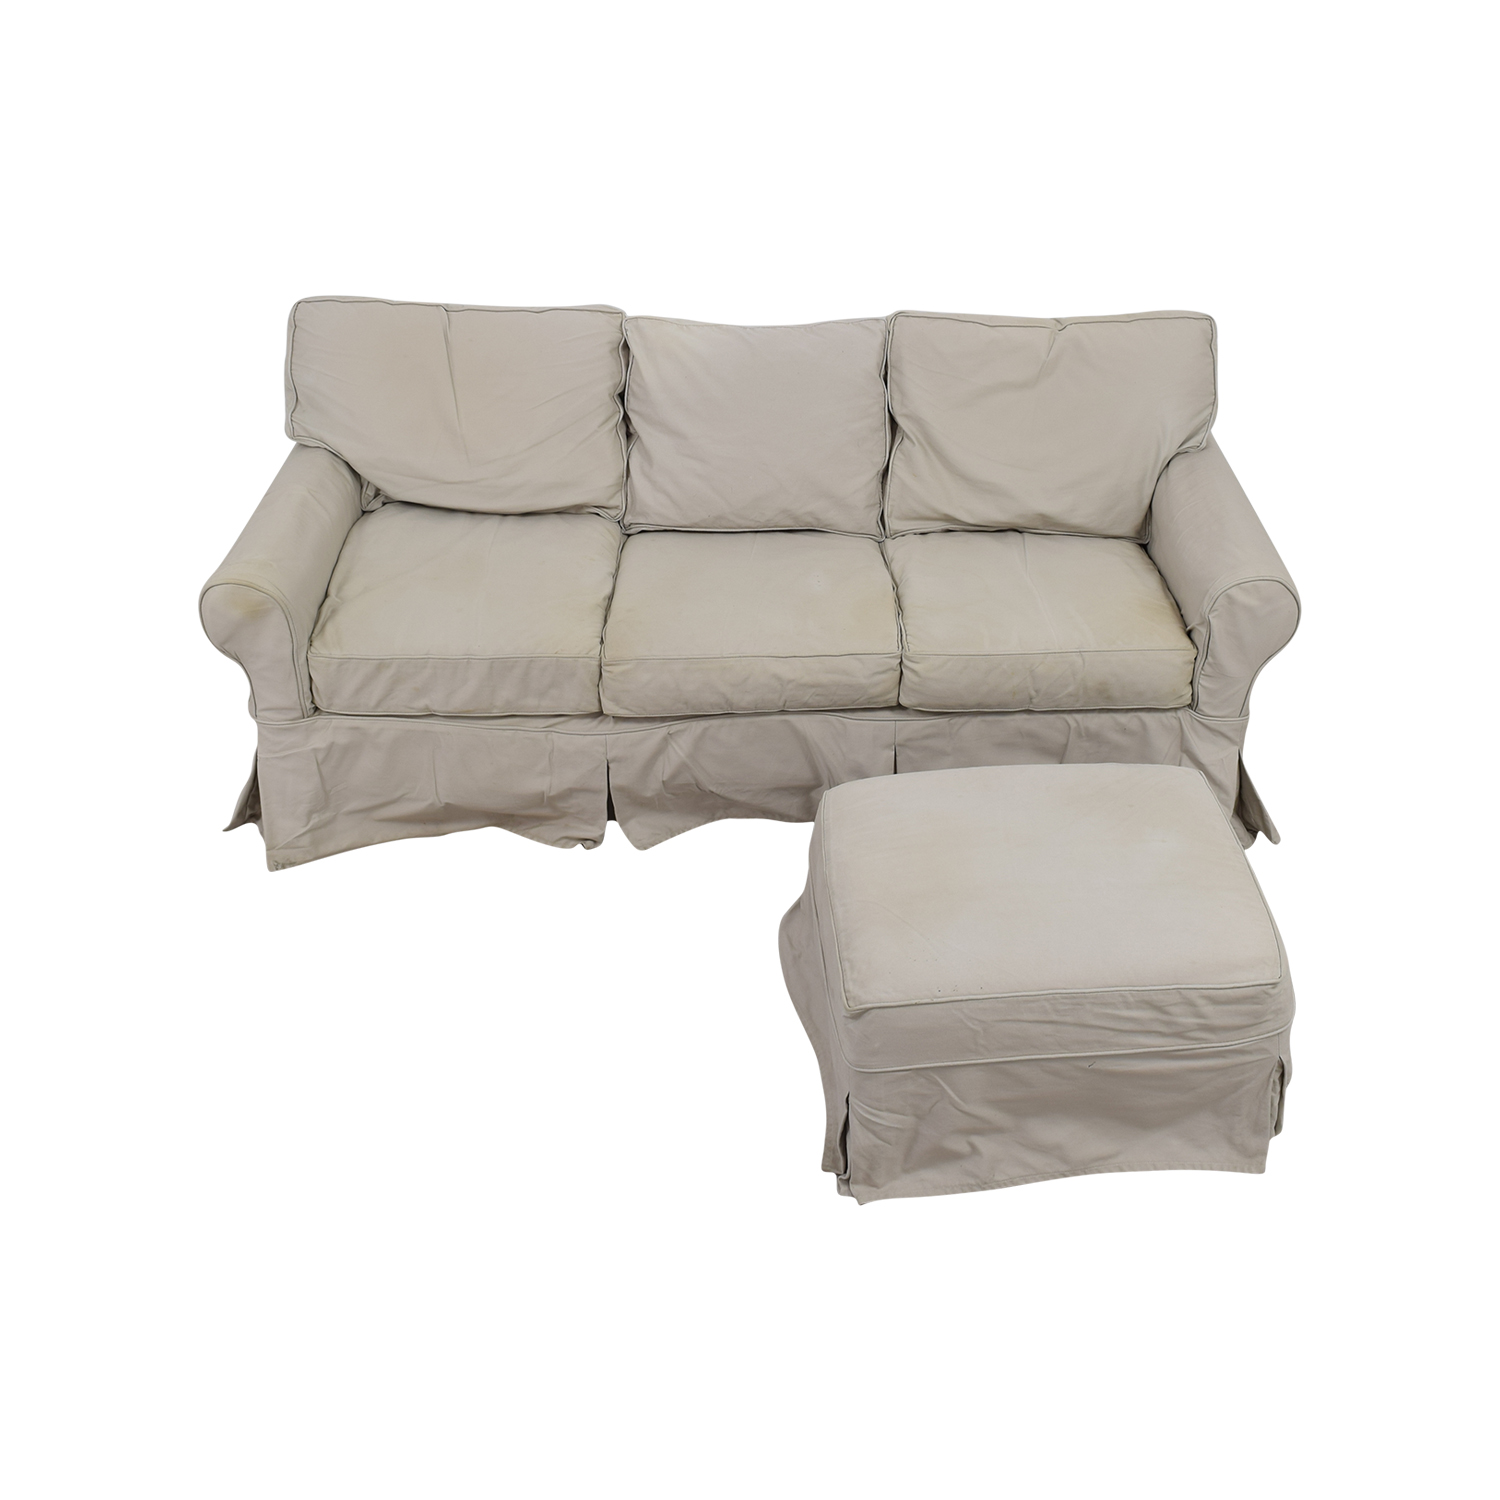 40% OFF Pottery Barn Pottery Barn Basic Slipcovered Sofa and